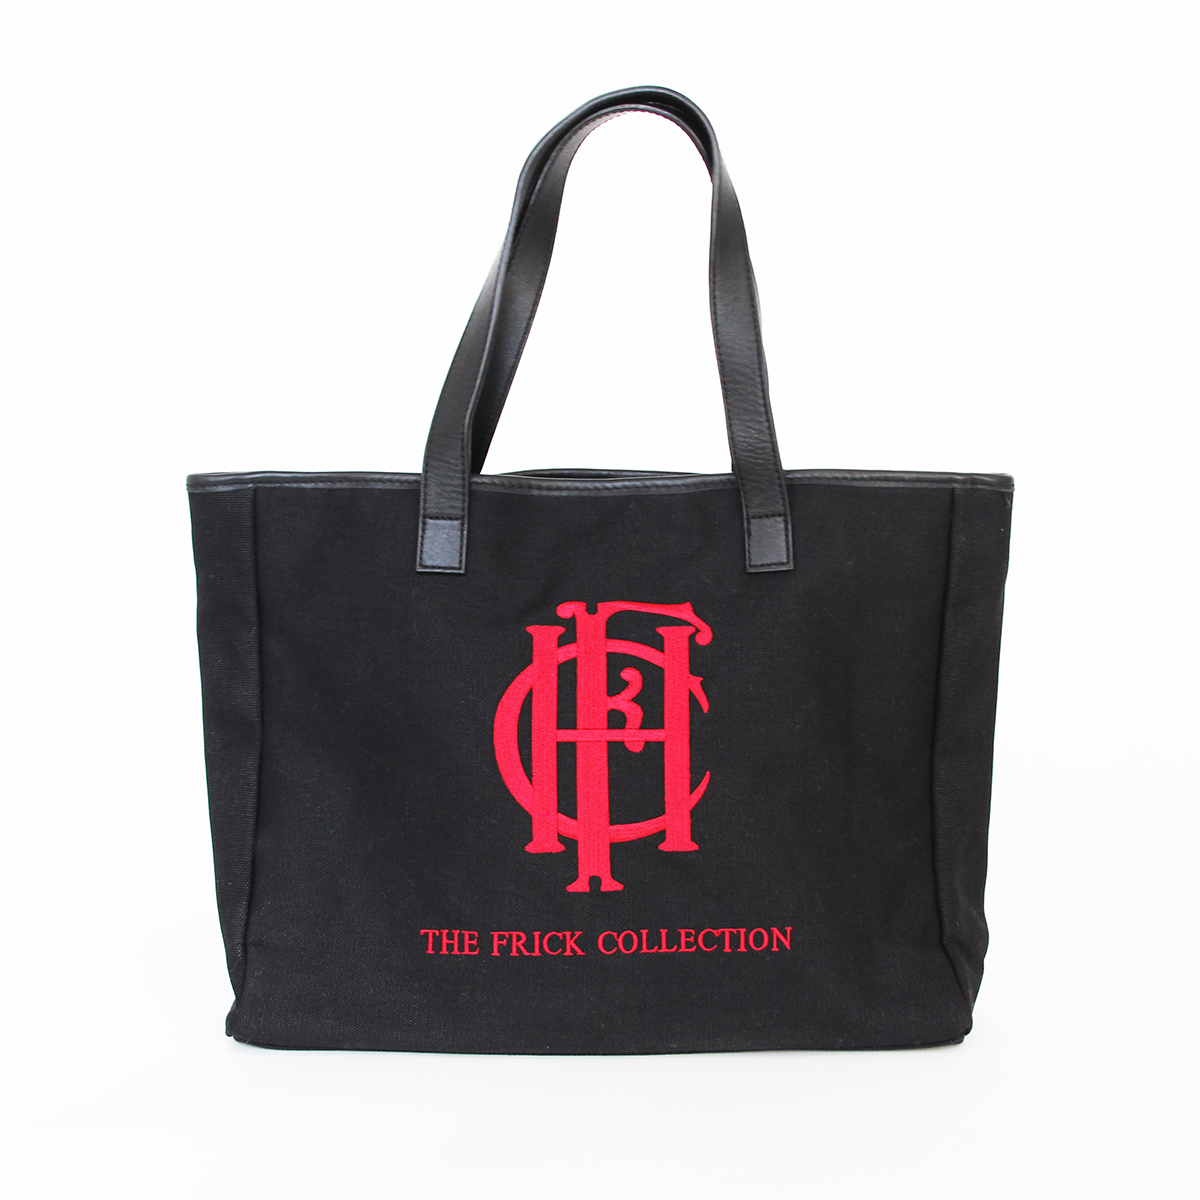 Frick Embroidered Tote Leather Handles